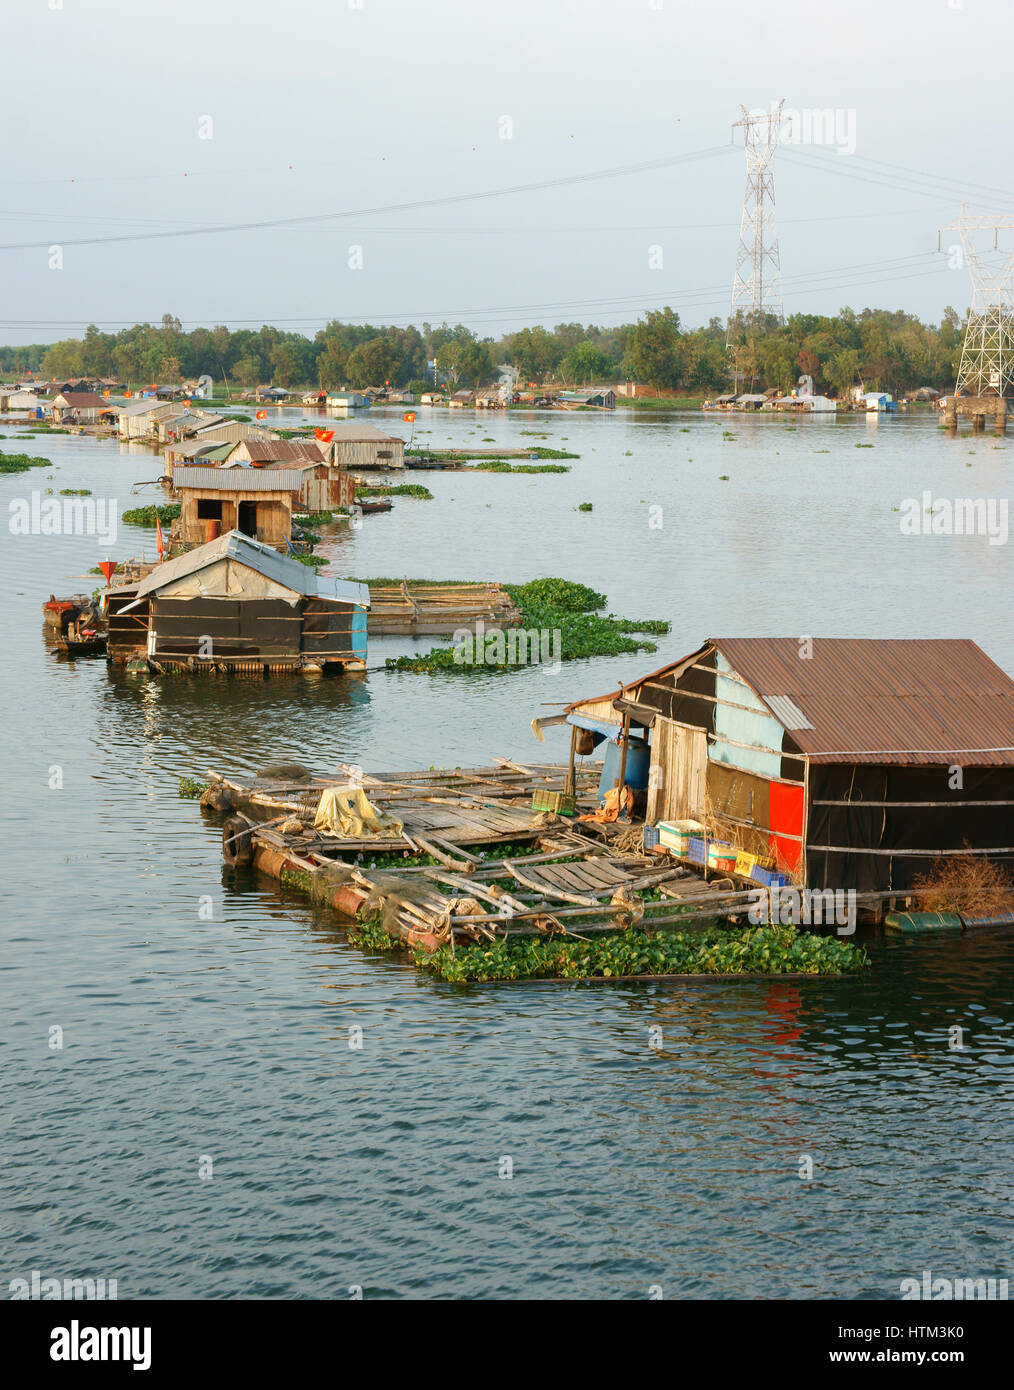 DONG NAI, VIET NAM, Life of Asian fisherman on La Nga river, floating house in residence of fishing village with - Stock Image